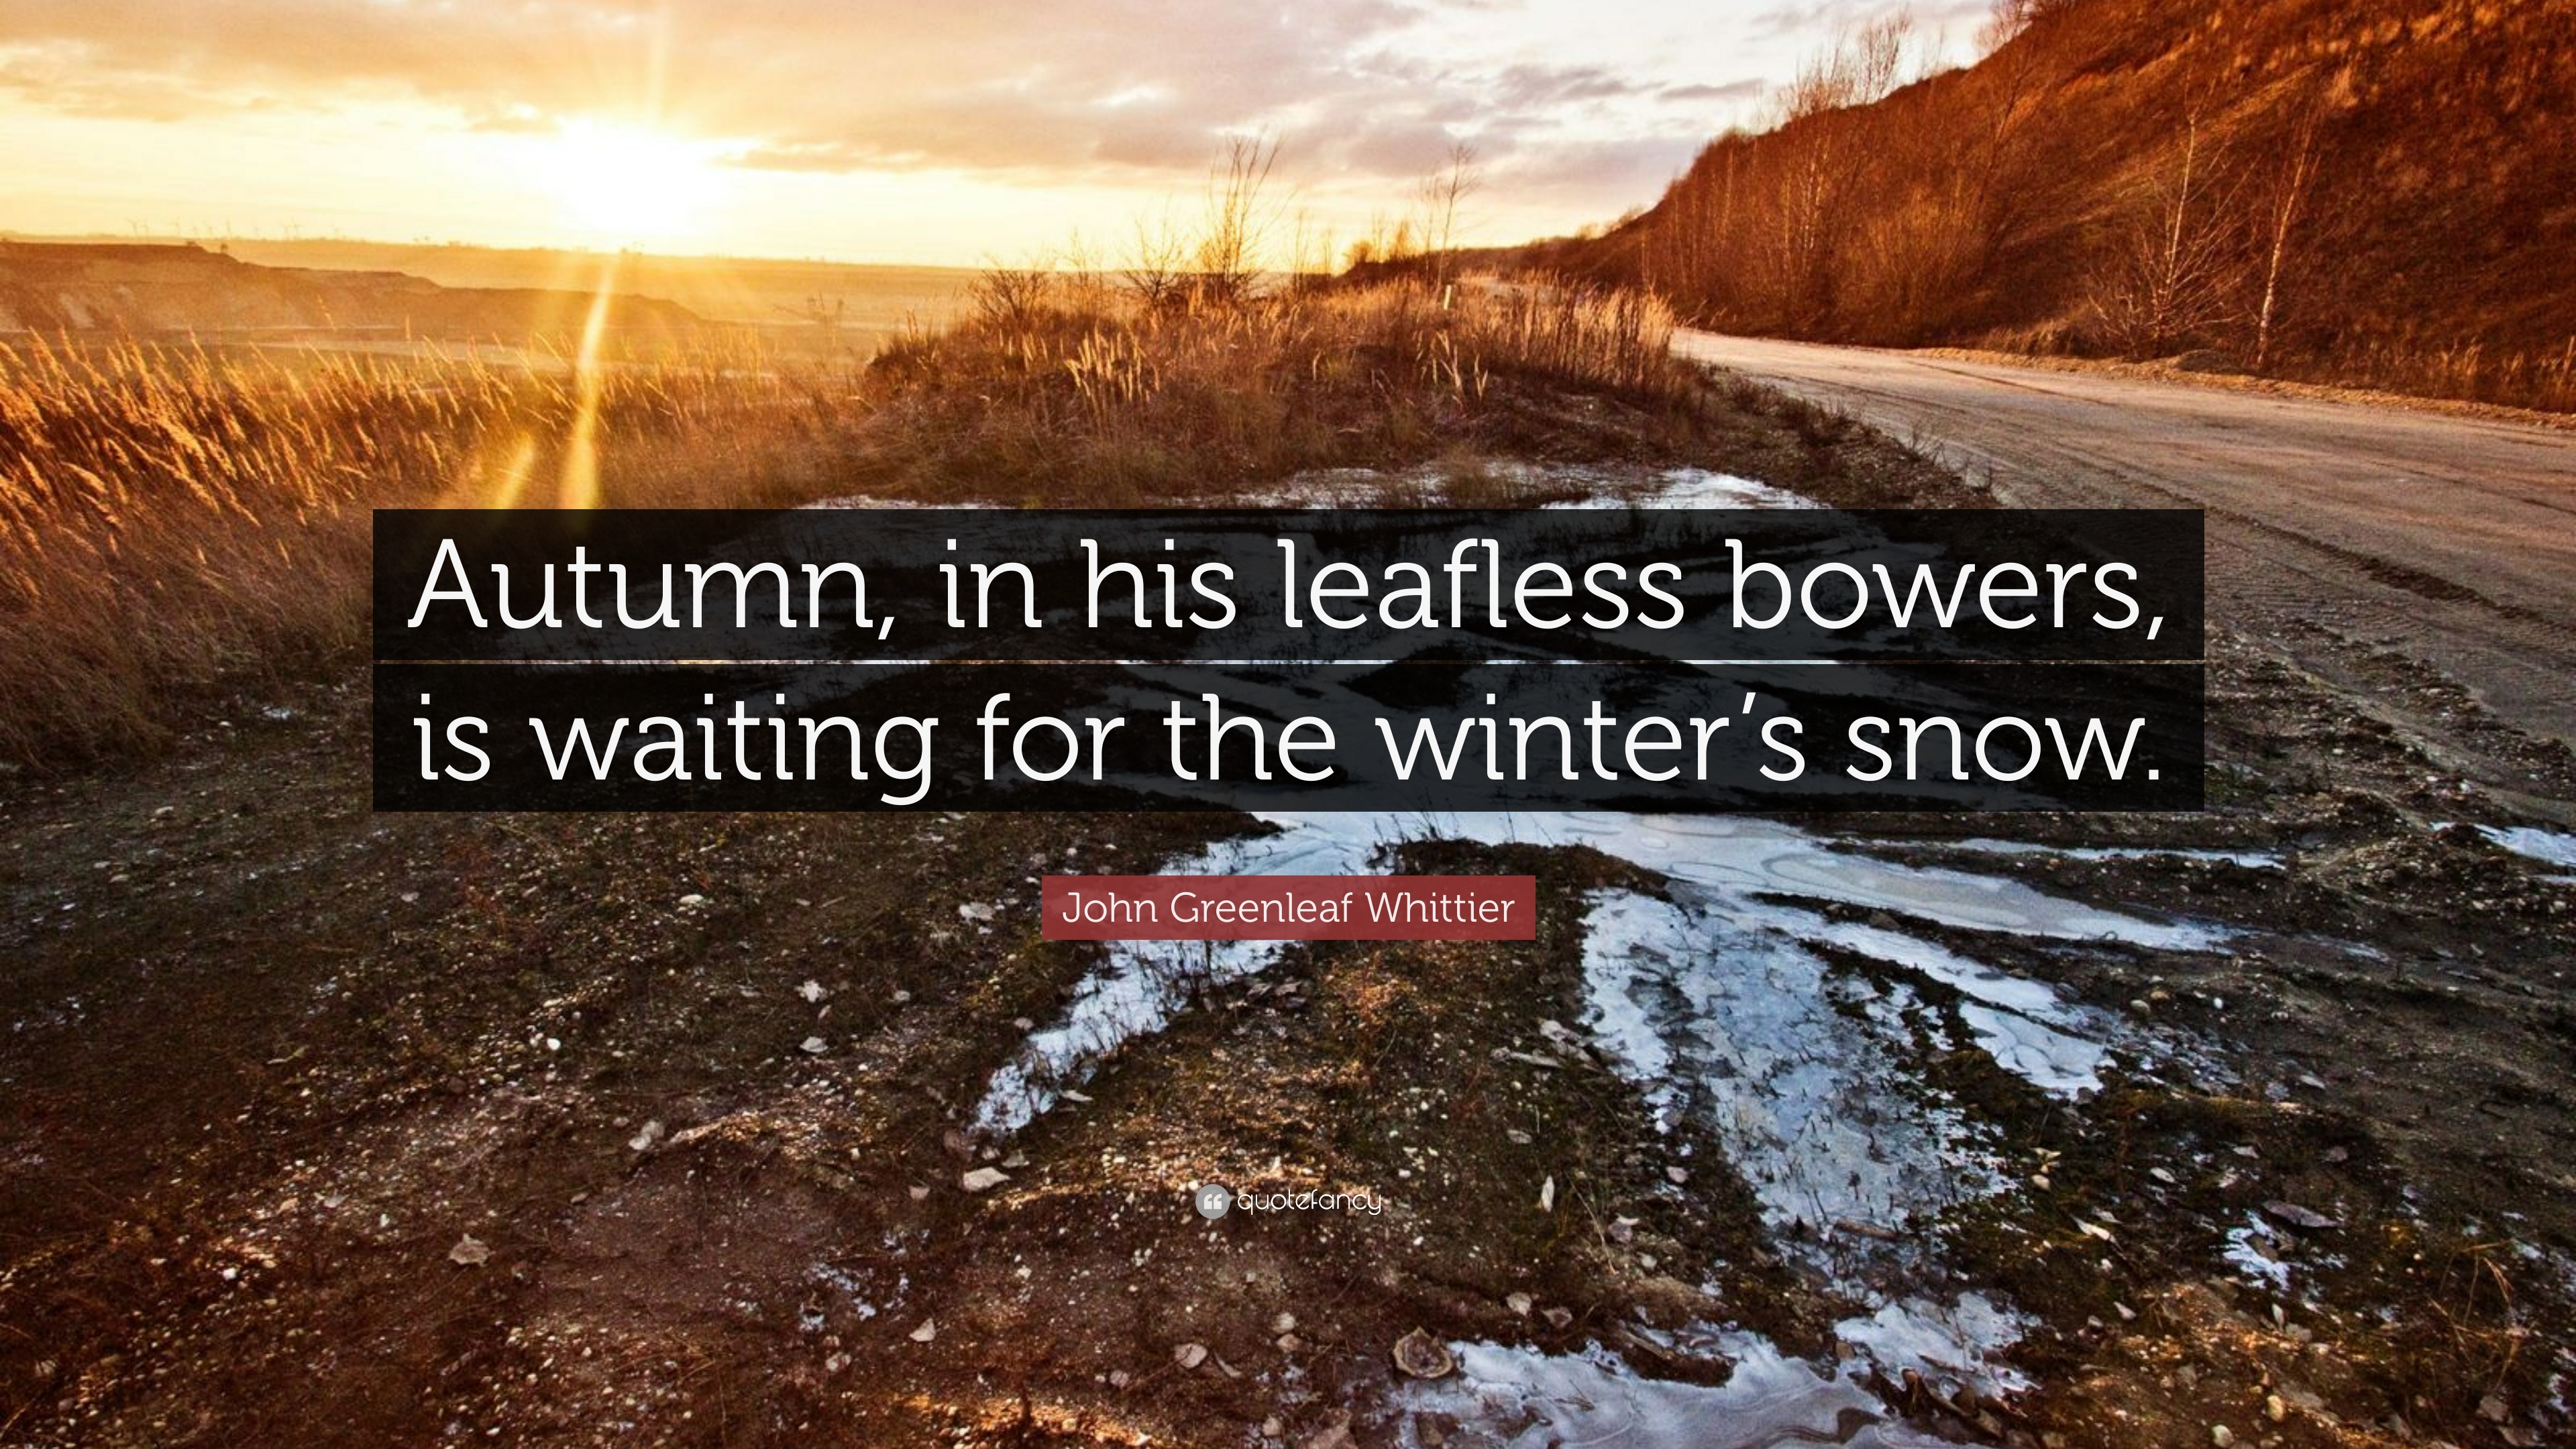 Exceptionnel John Greenleaf Whittier Quote: U201cAutumn, In His Leafless Bowers, Is Waiting  For